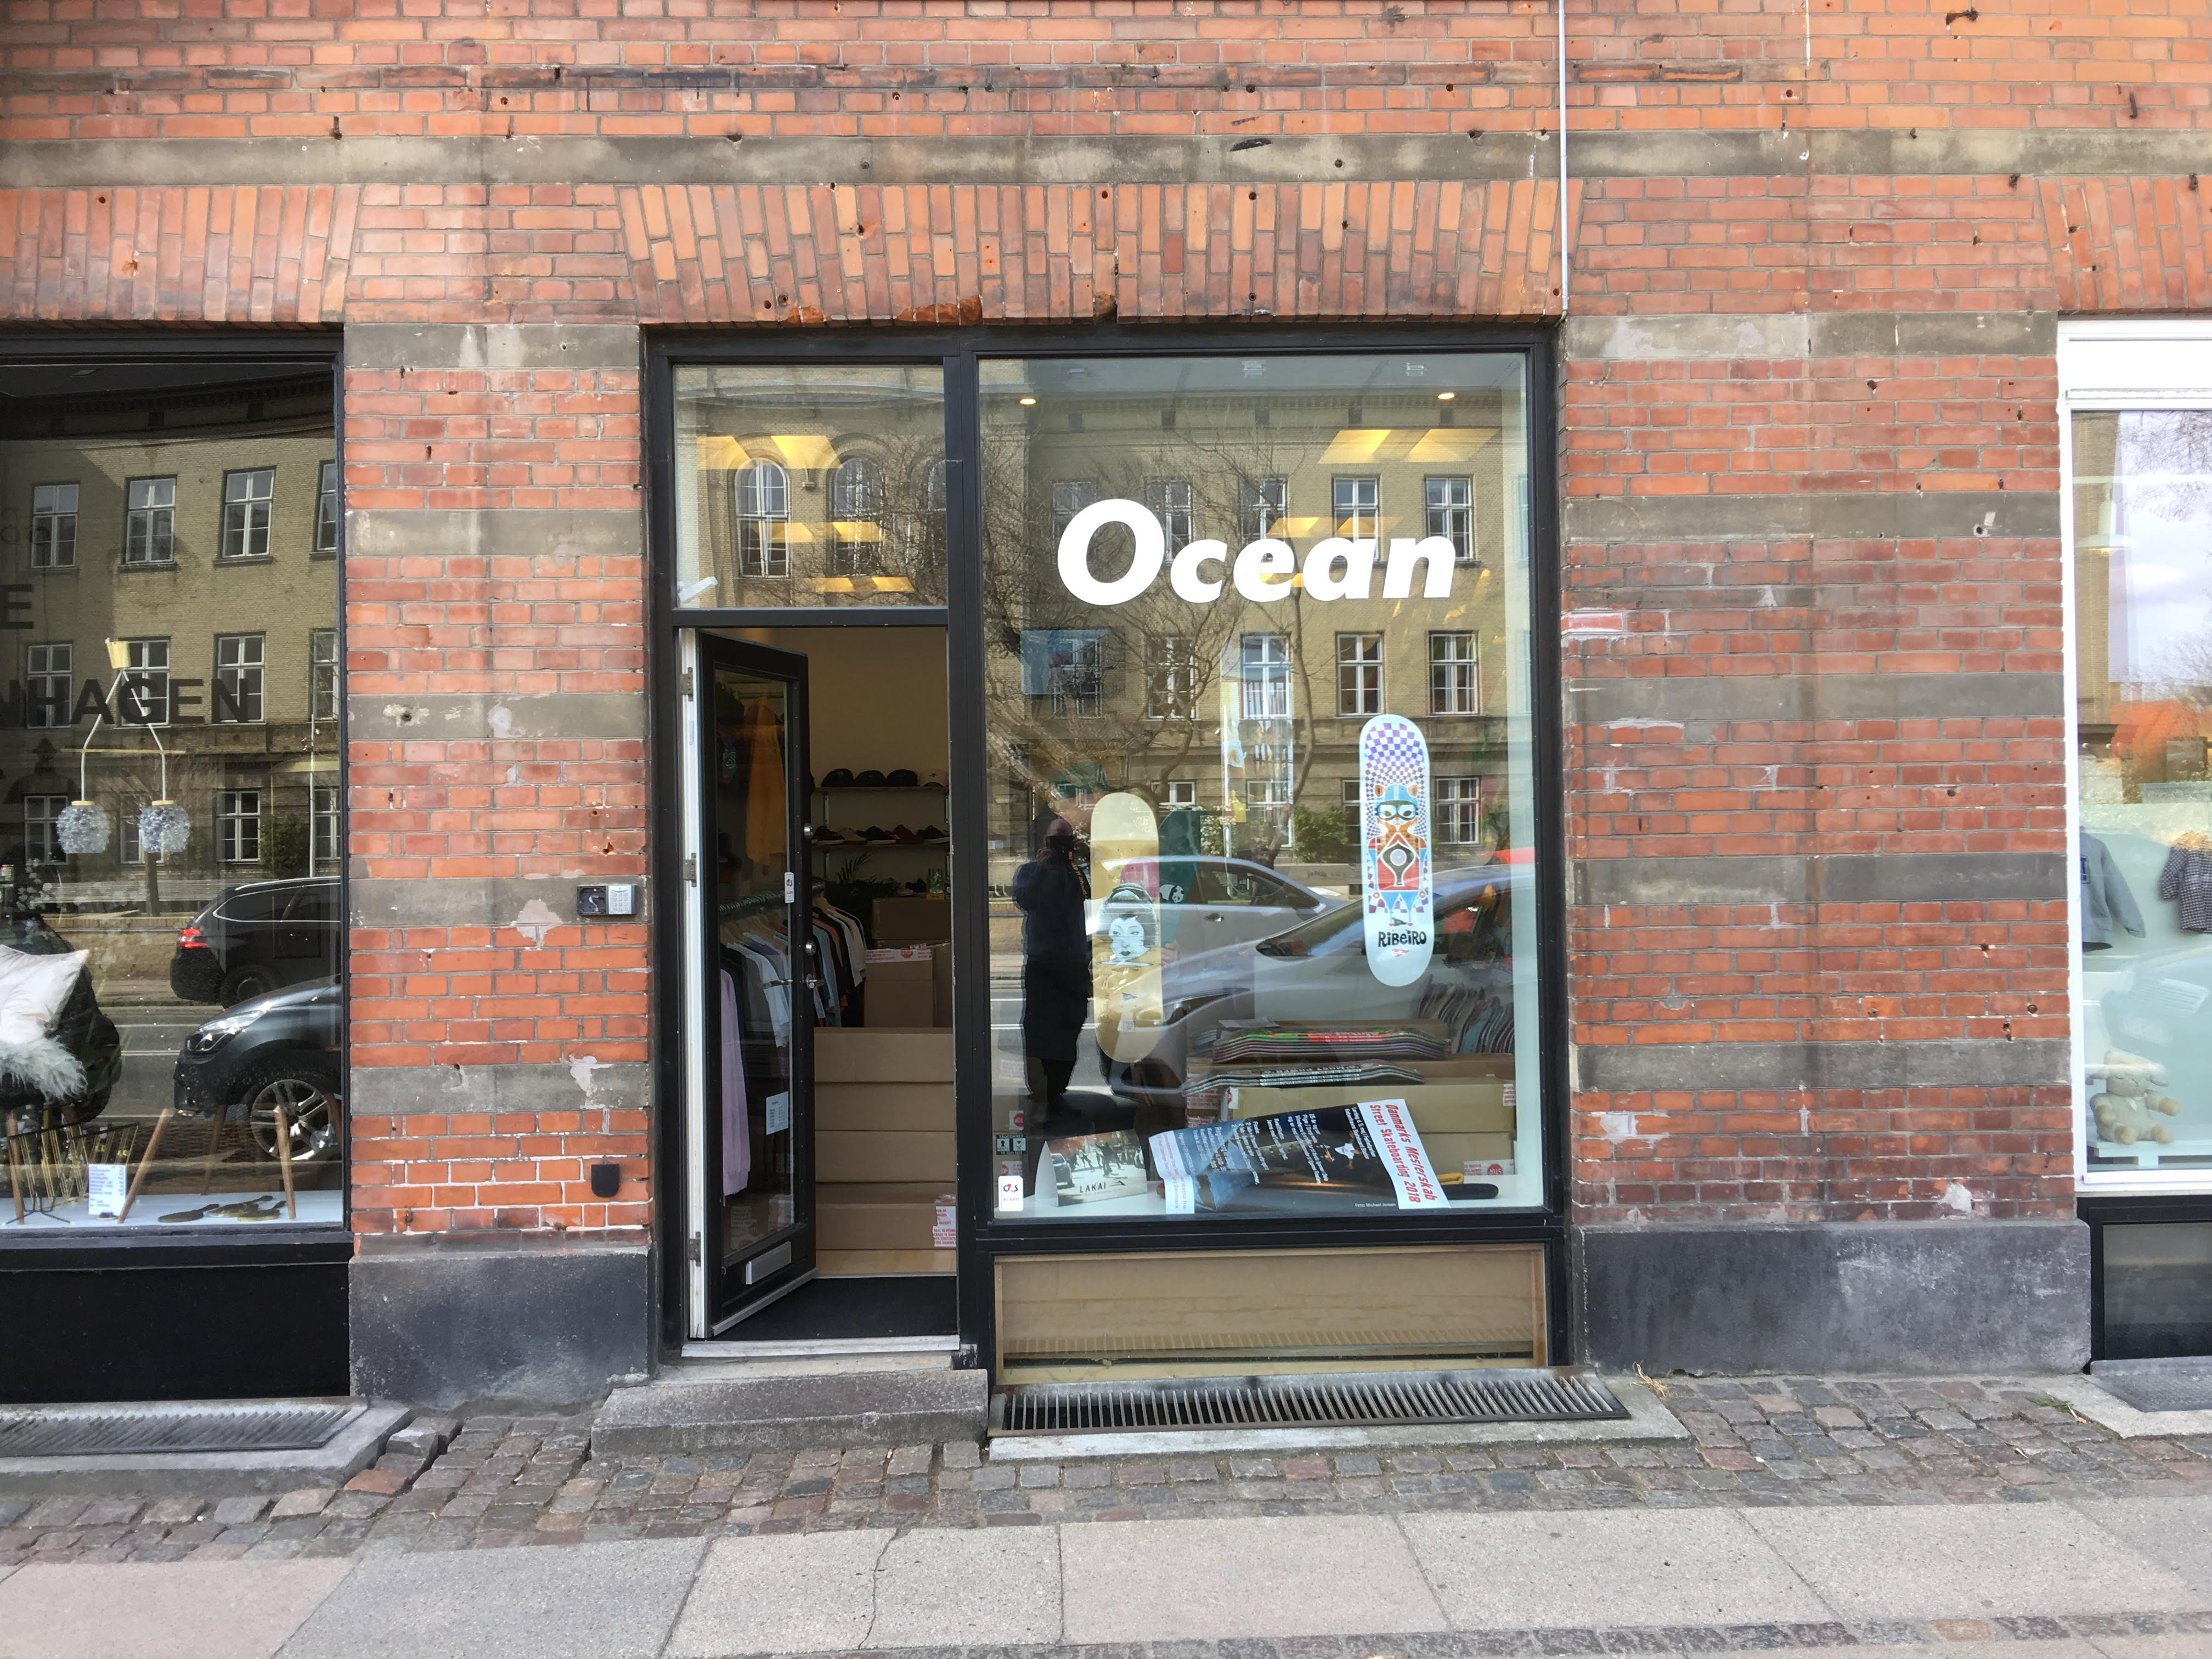 Small cool store, adresse is Rolighedsvej 20, 1958 Frederiksberg C. Parking & Skatespot in front of the stores.